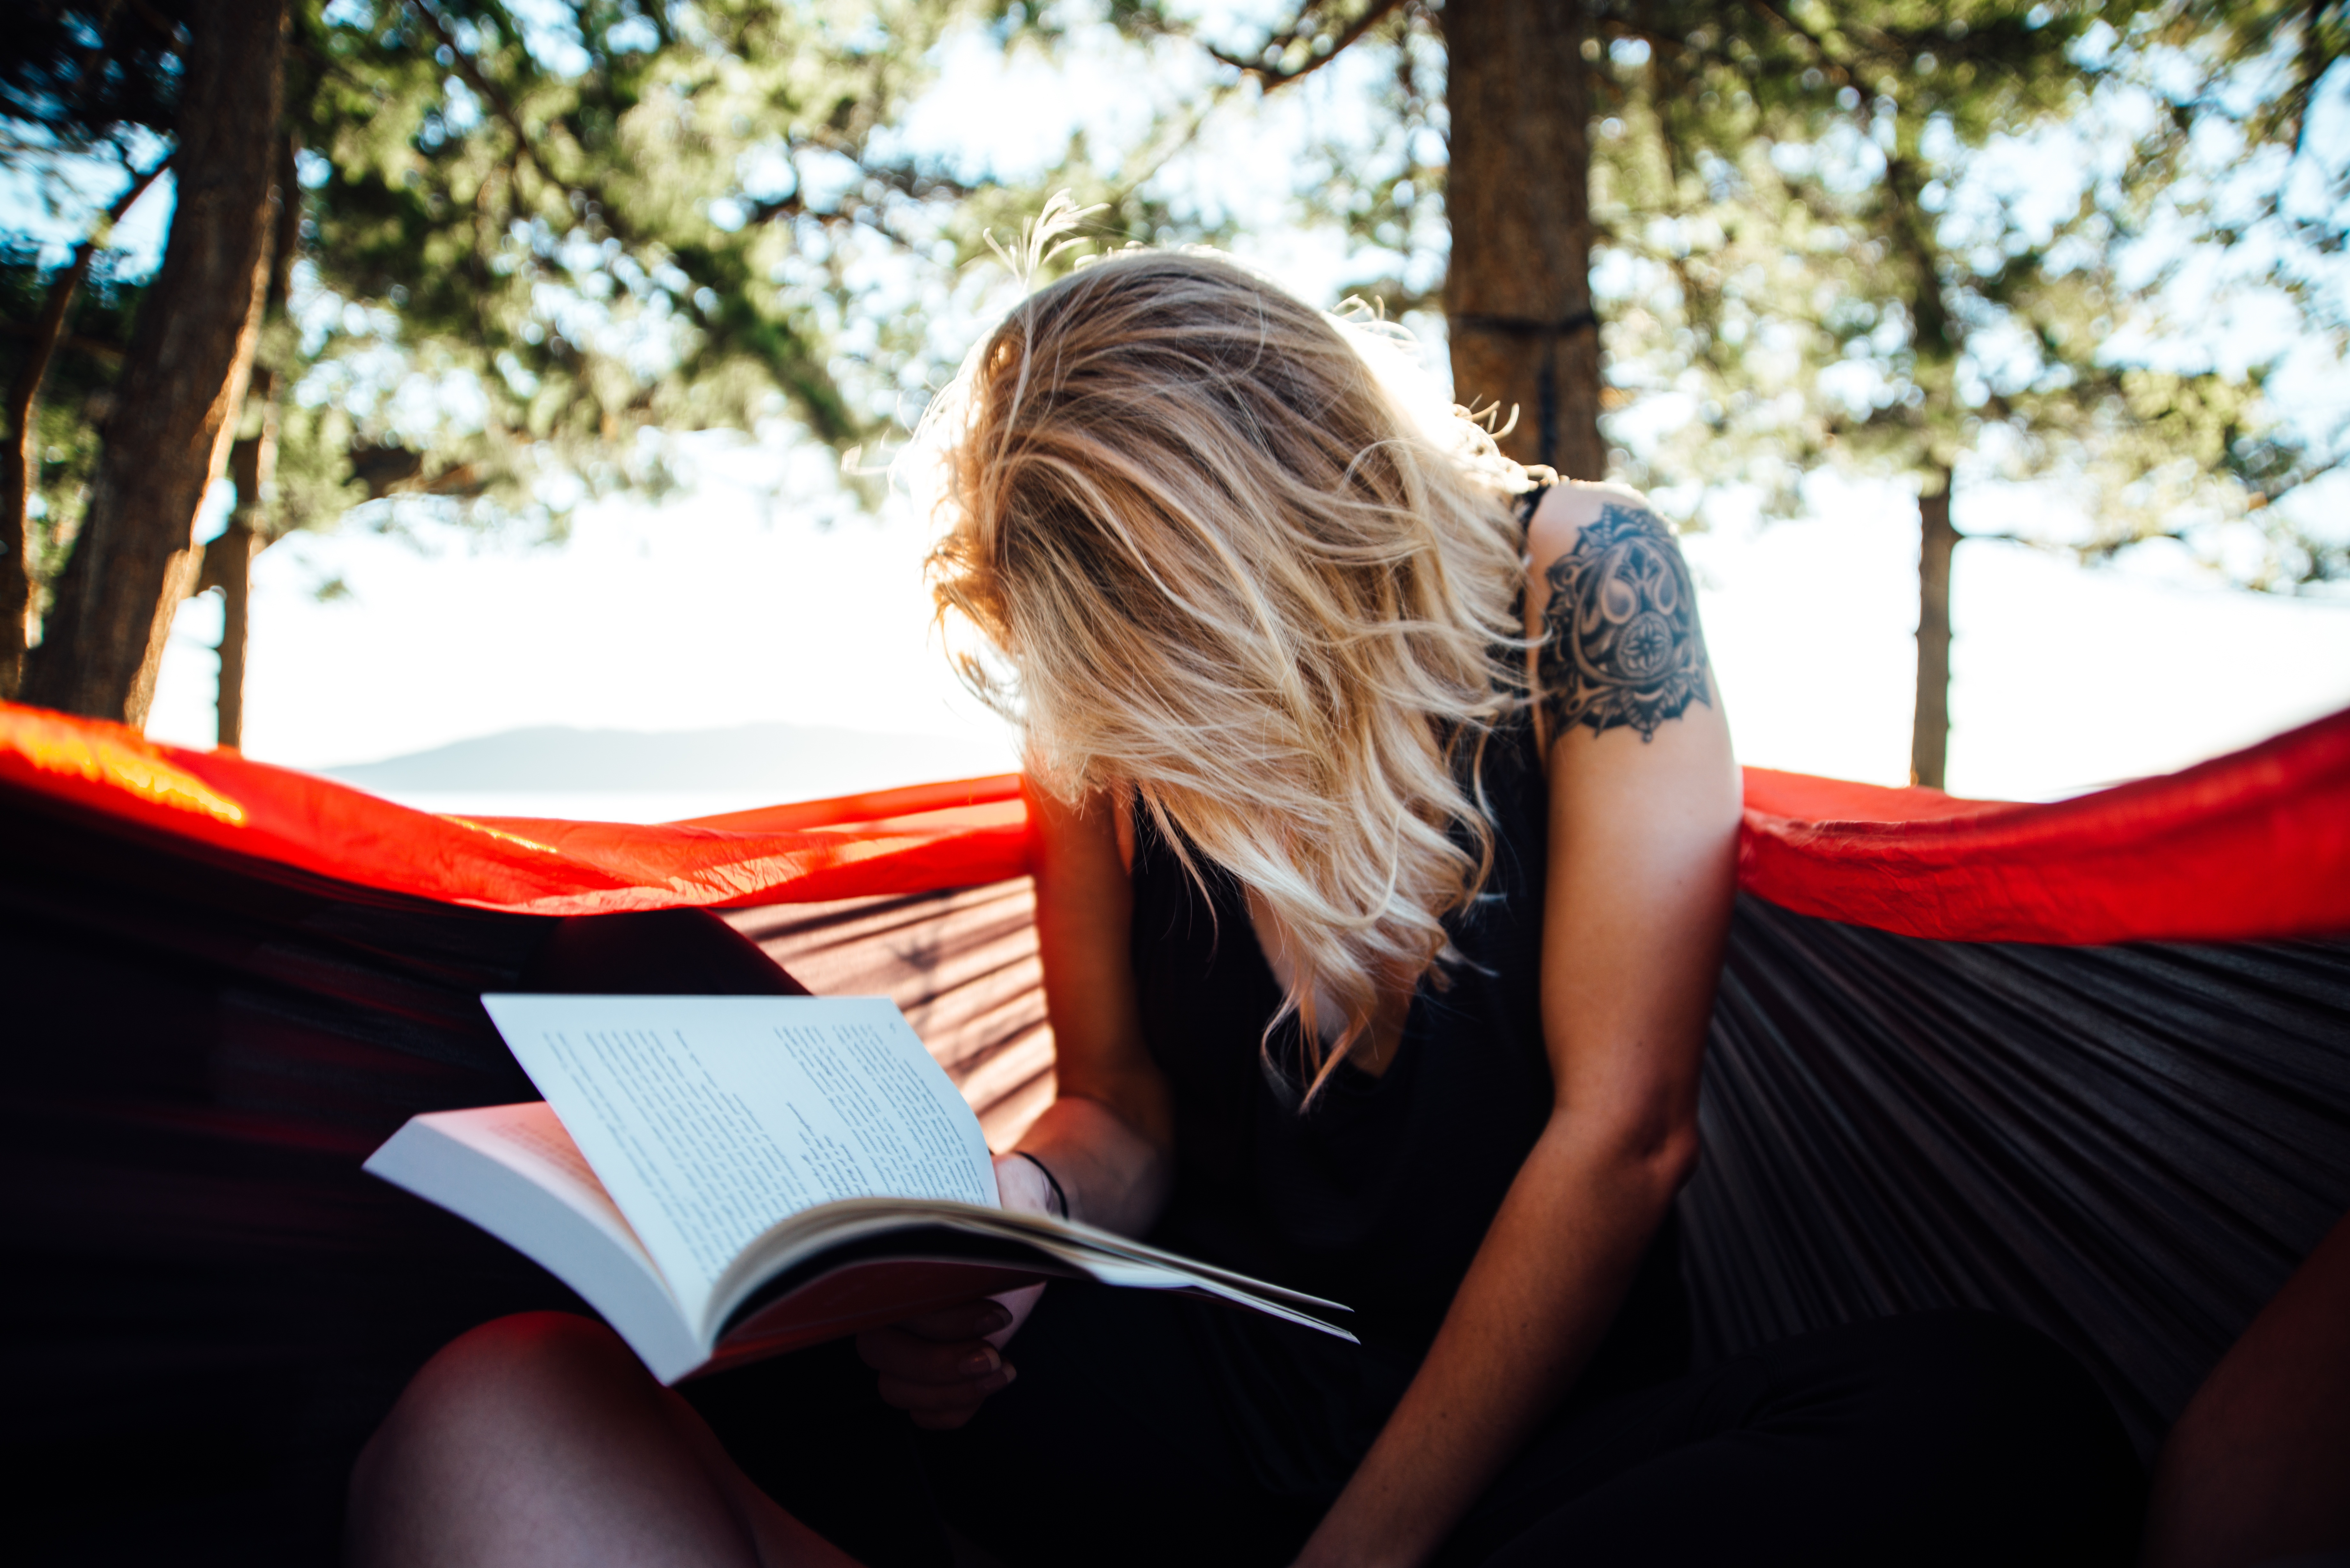 Blonde Woman Reading Book Read At Nature Free Image